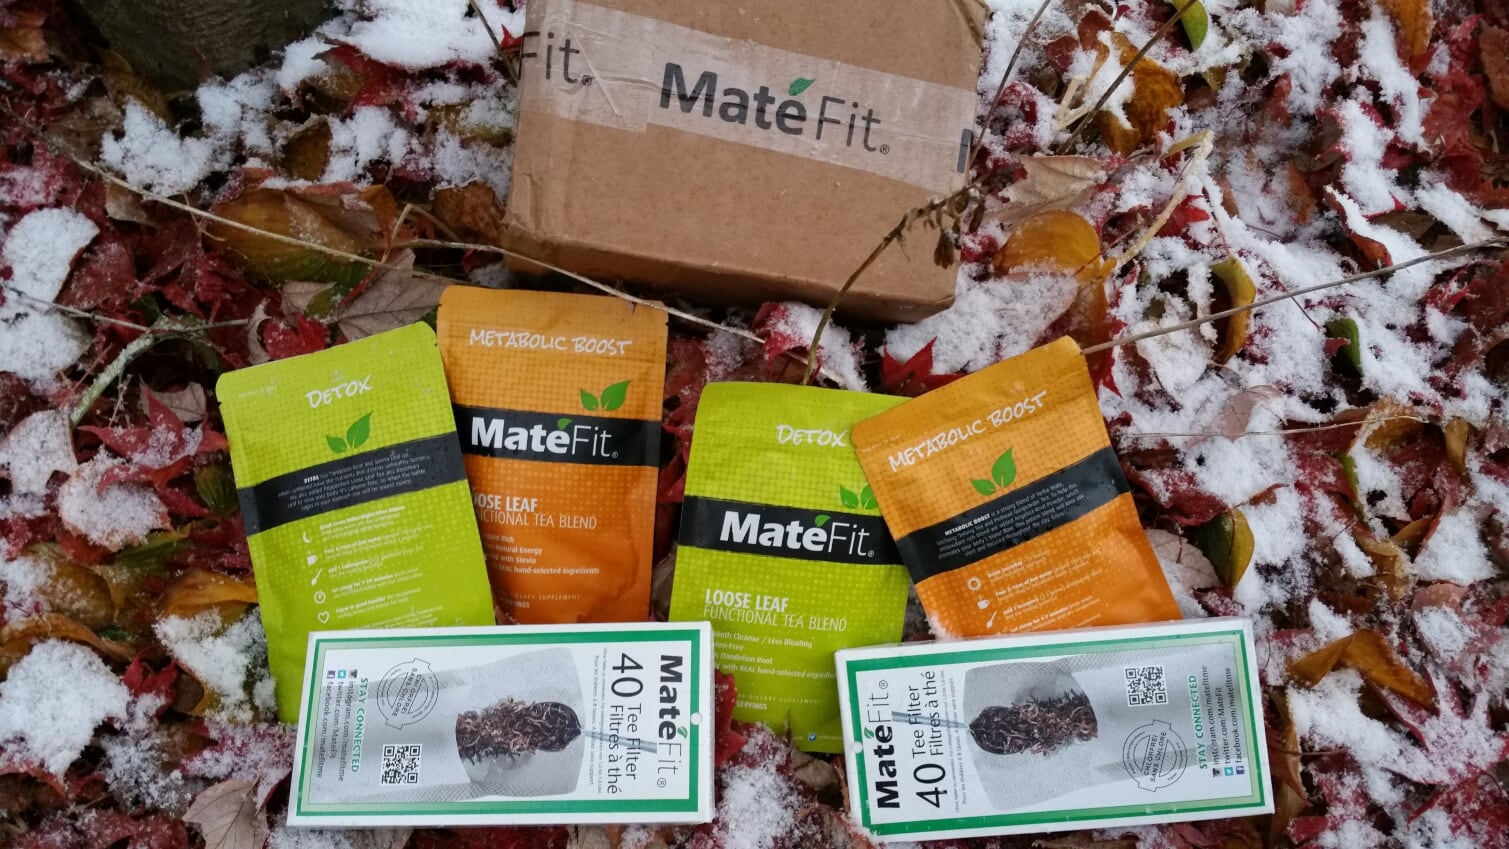 This is not your ordinary detox tea, every ingredient was handpicked for a specific purpose. The result: 88% felt less bloated and 93% would recommend MateFit to their friends.